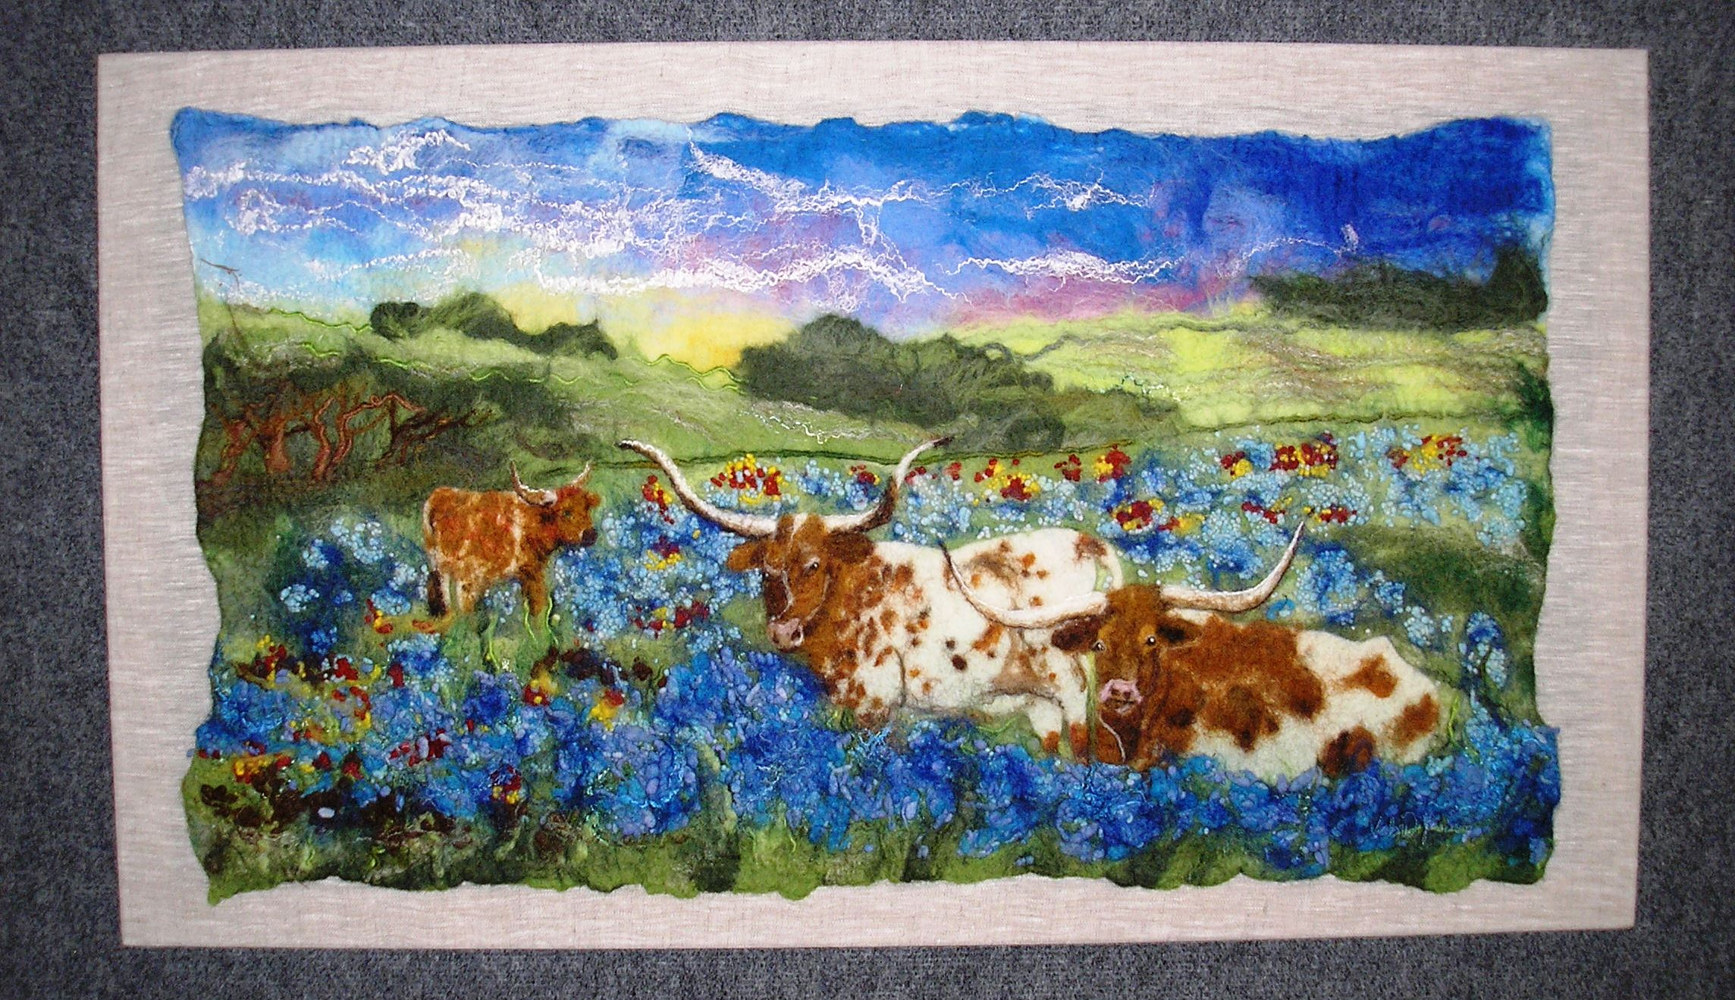 Longhorns in Blue bonnets by Valerie Johnson